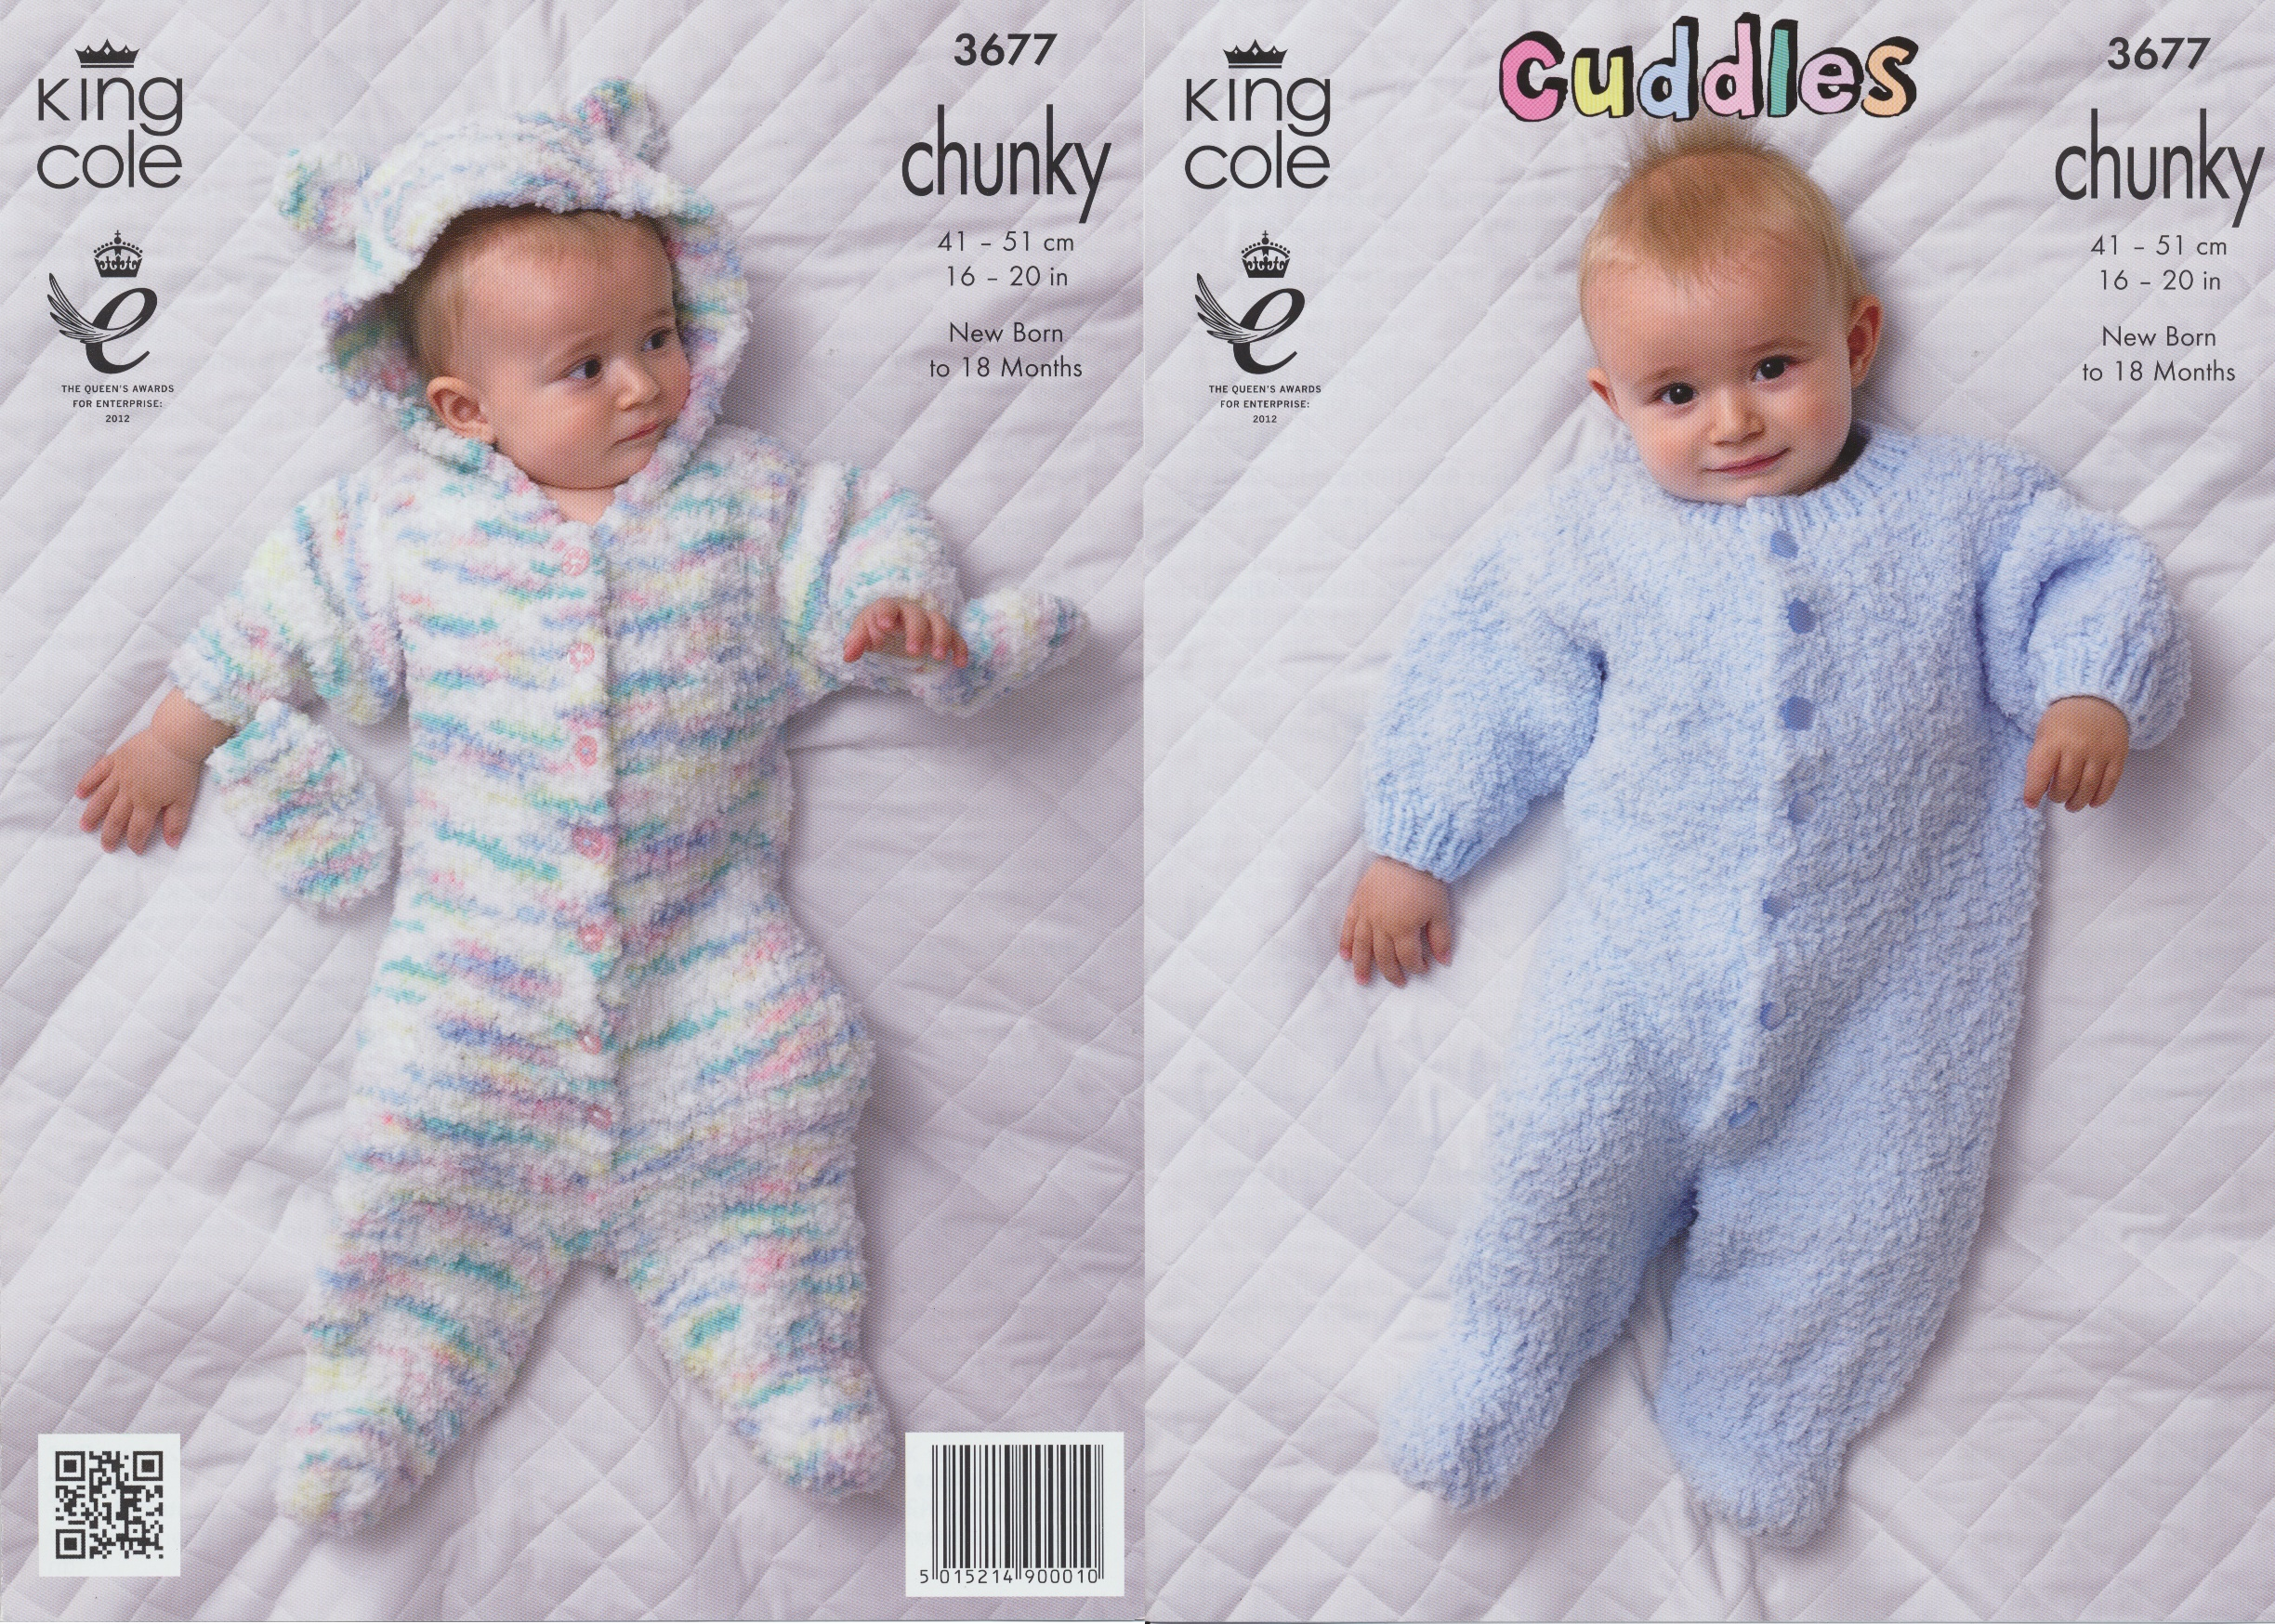 Knitting Pattern King Cole : Cuddles Chunky Knitting Pattern King Cole Baby Hooded ...